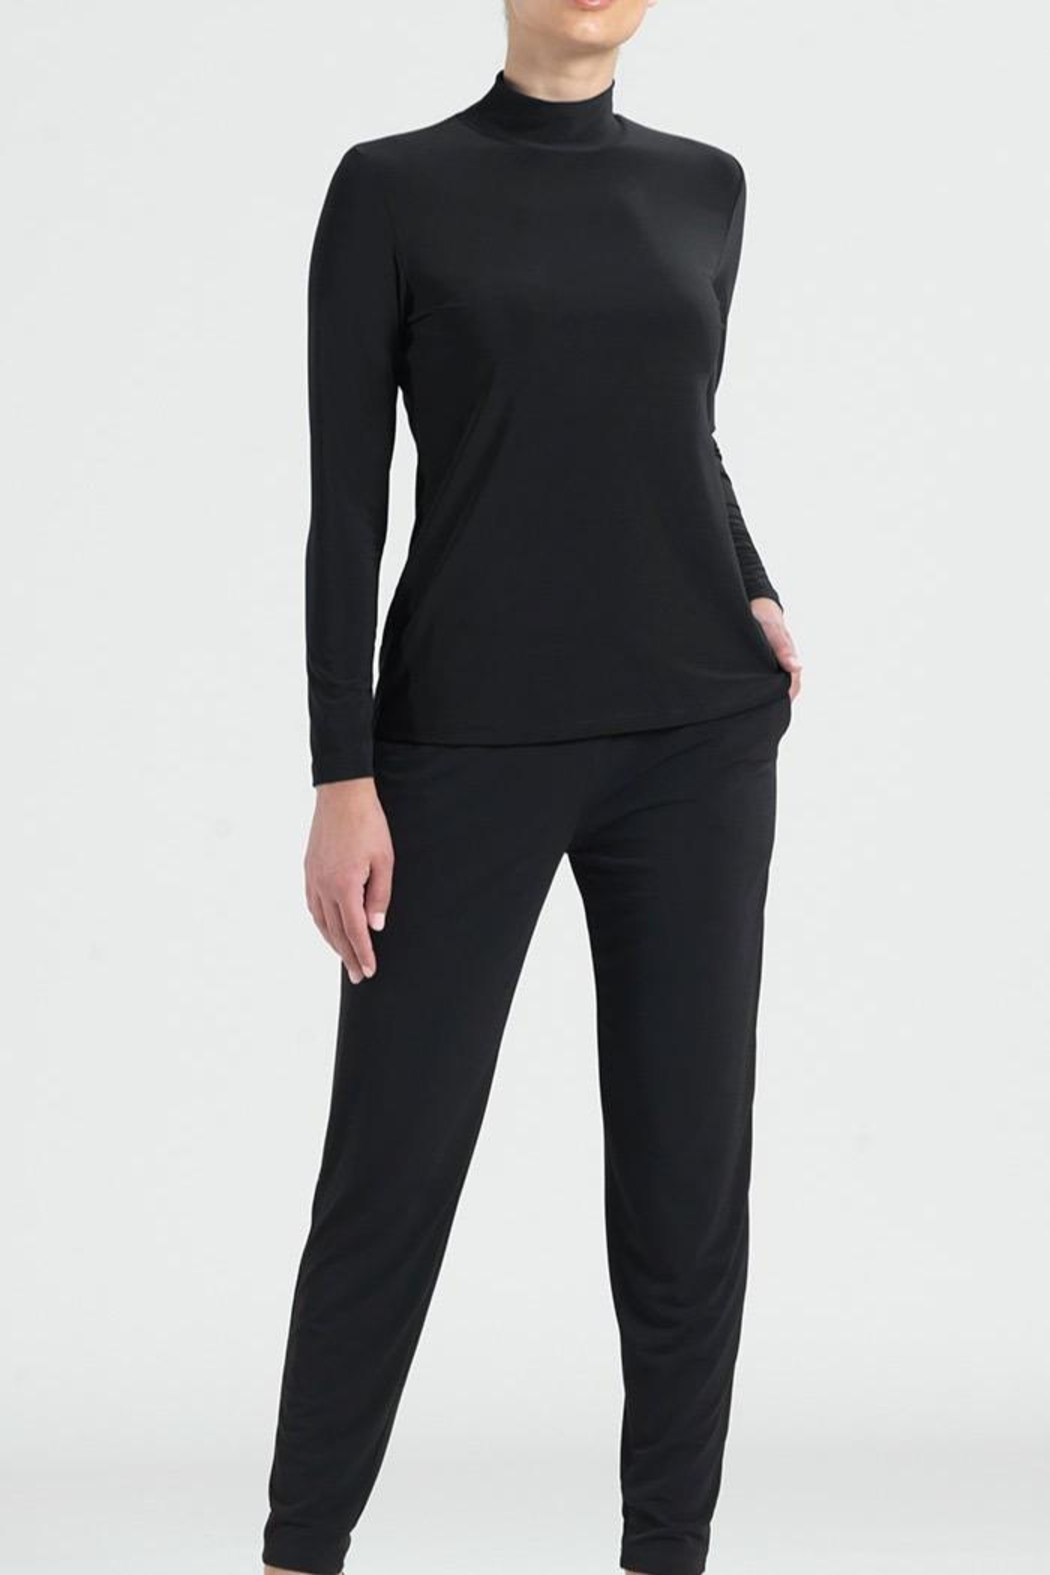 Clara Sunwoo Mock Neck Top - Front Cropped Image